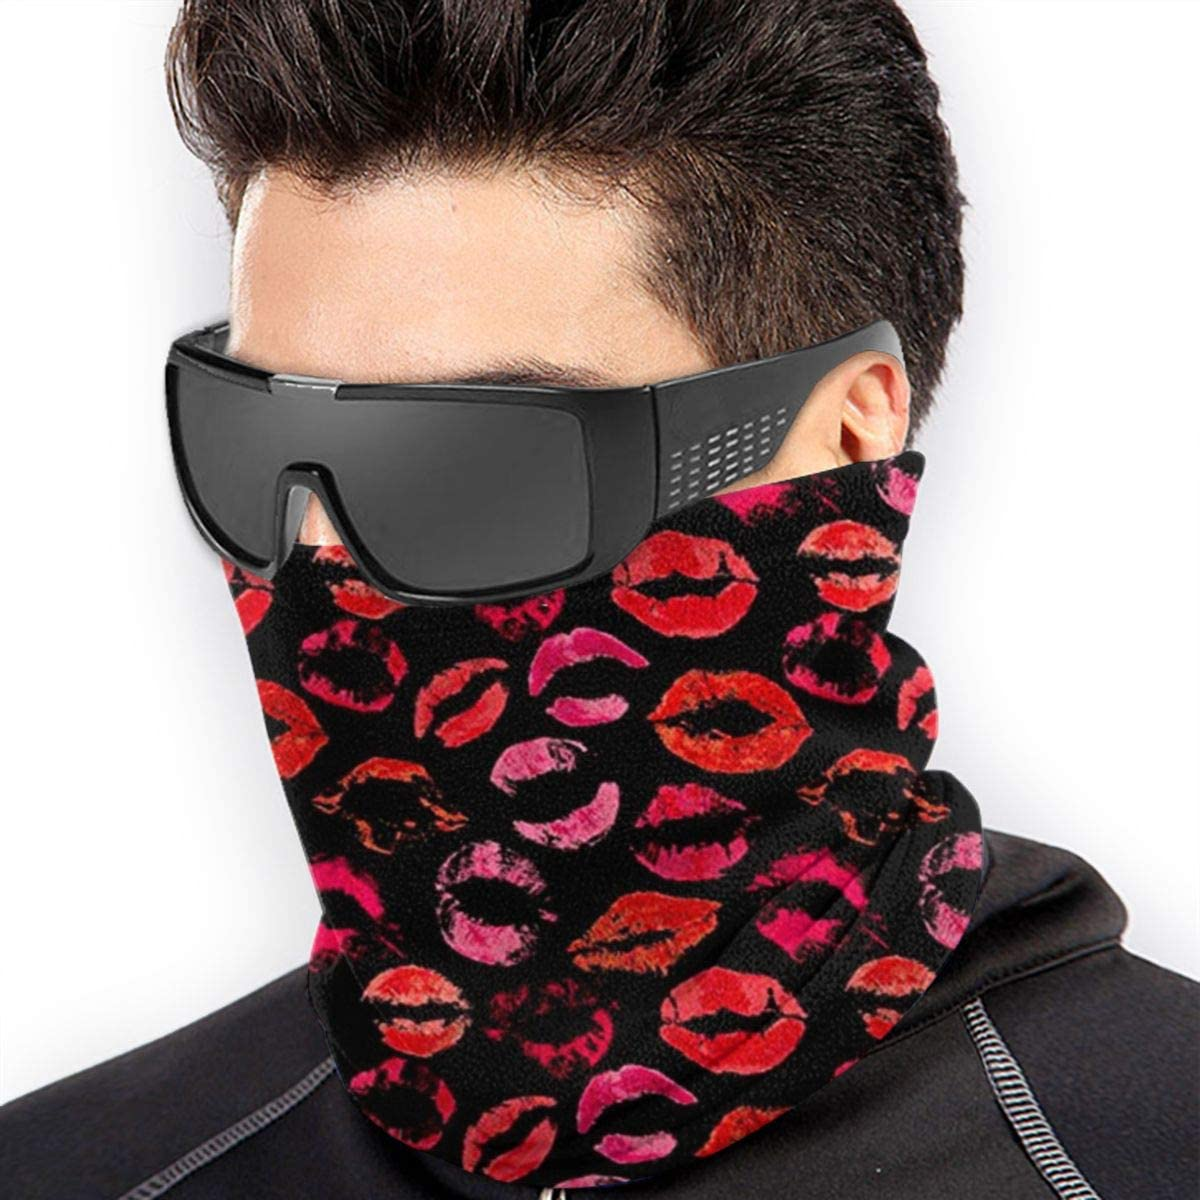 NA Scarlet Black Mask Warm Neck Scarf Outdoor UV Protection Party Cover Men and Women Multi-Function Headdress